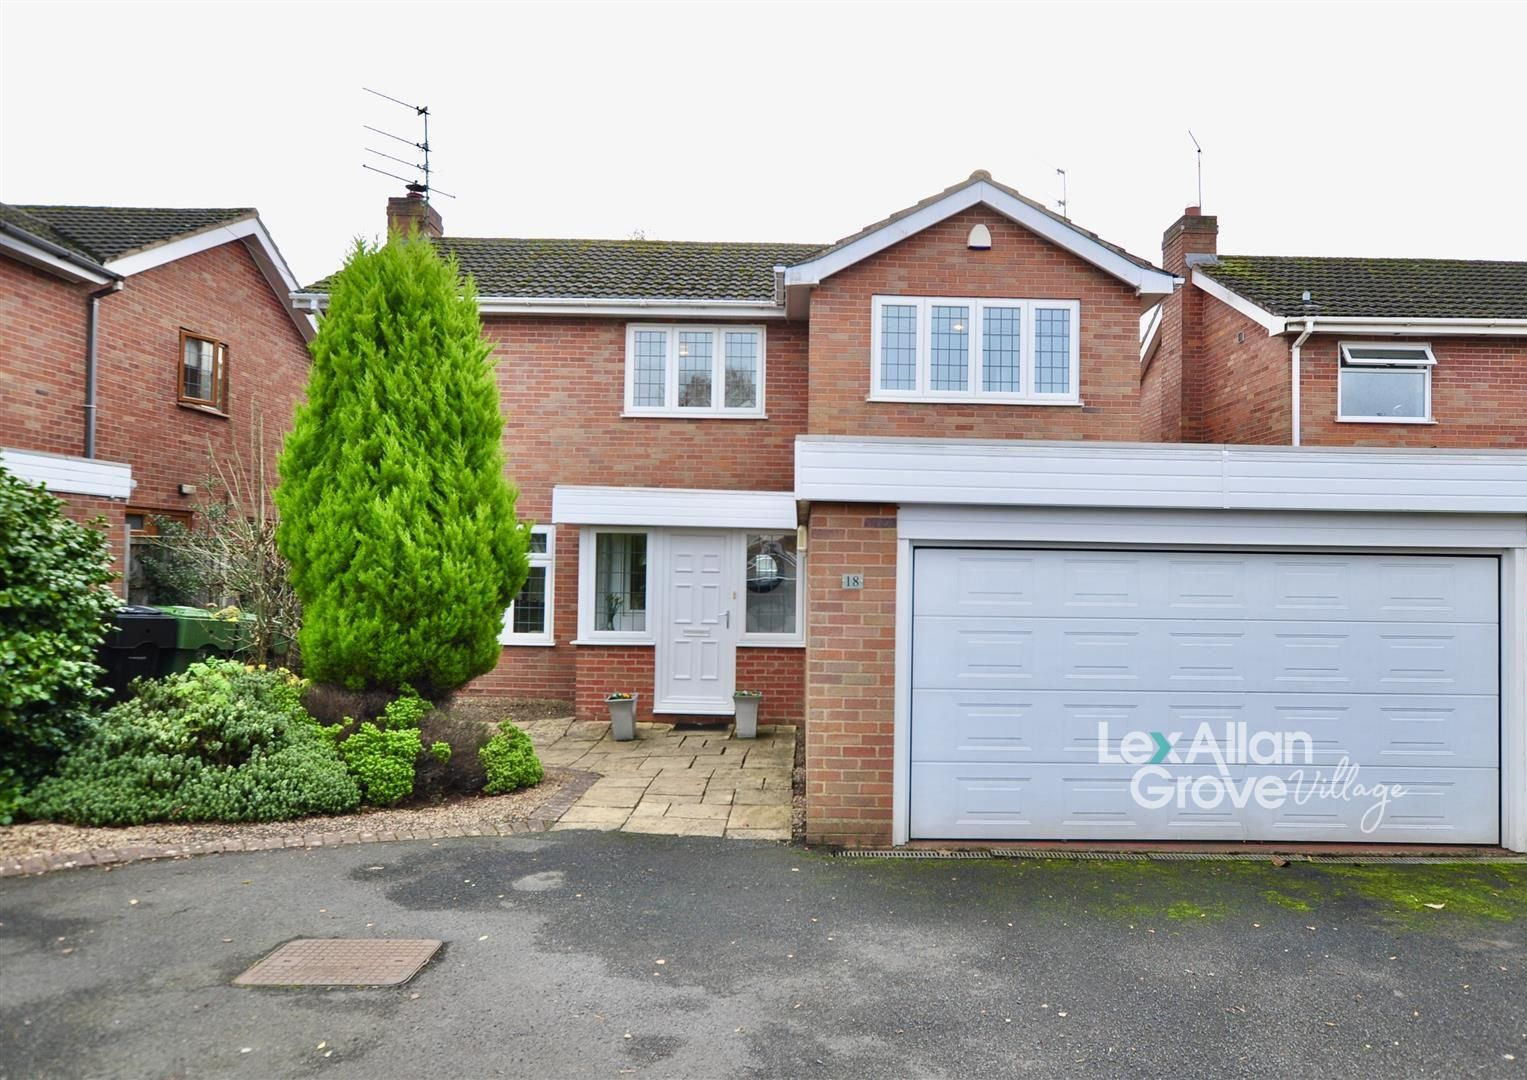 4 bed house for sale in Hagley  - Property Image 1